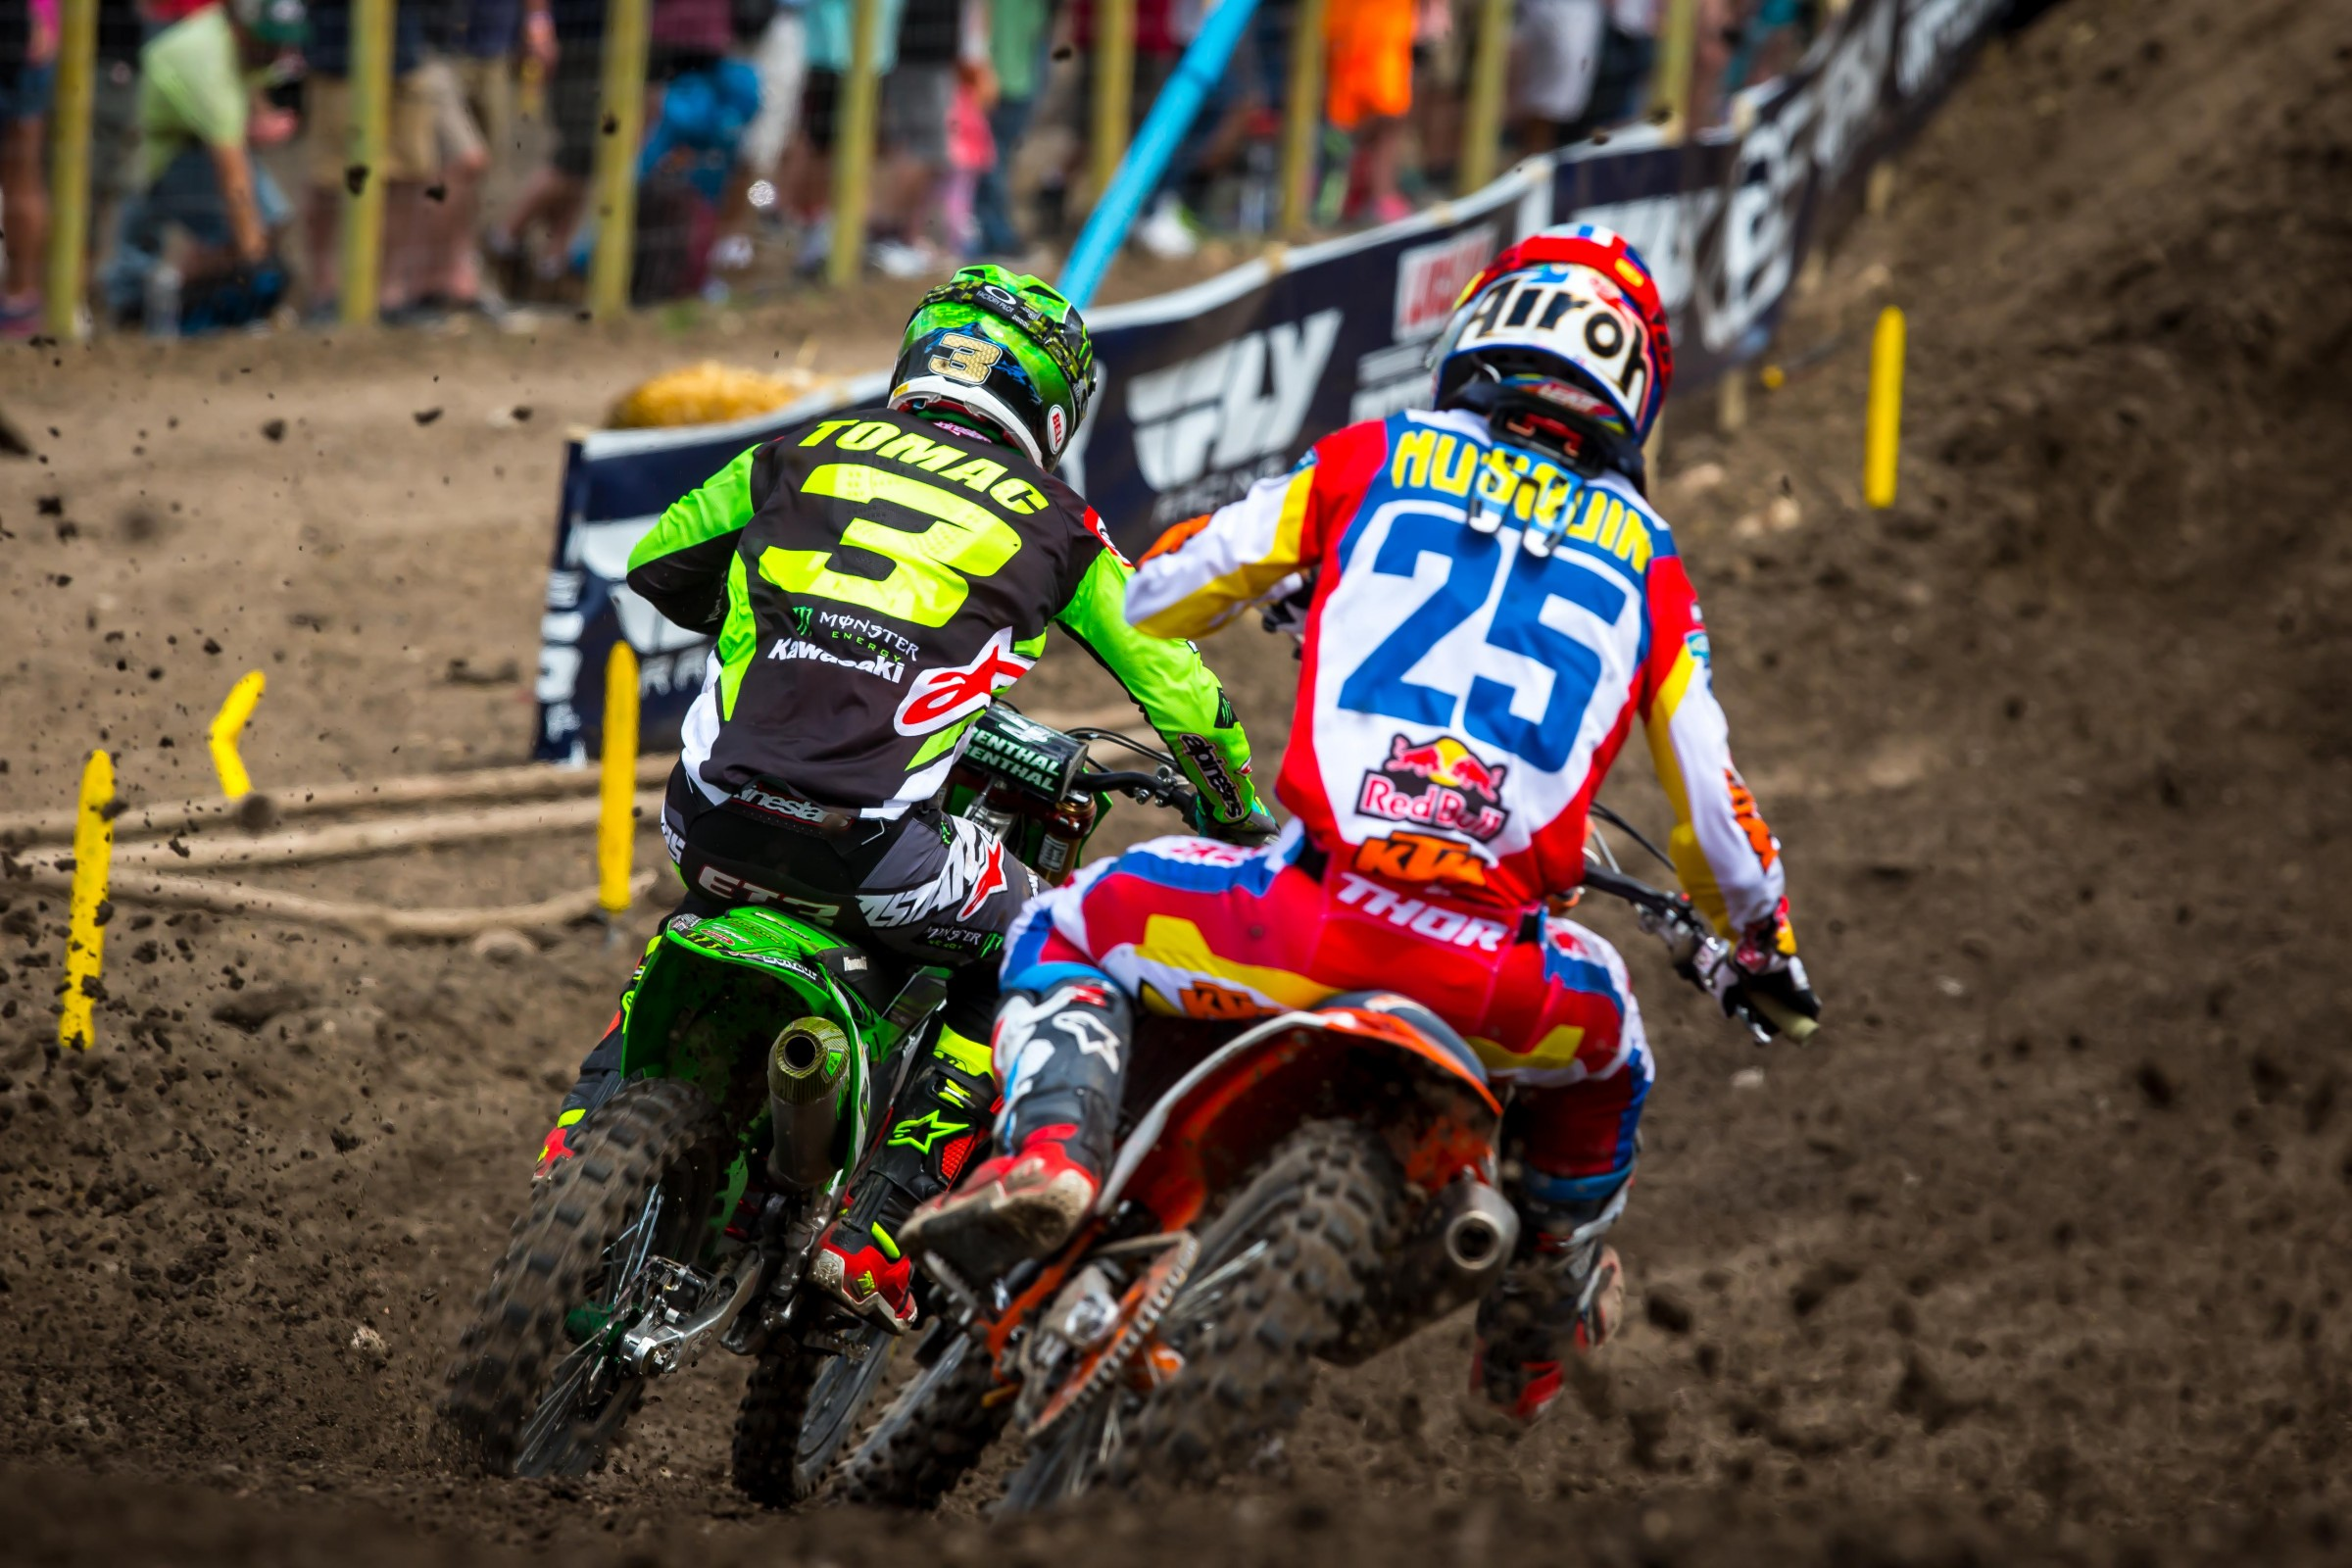 Can Tomac get back to his winning ways in Pennsylvania?